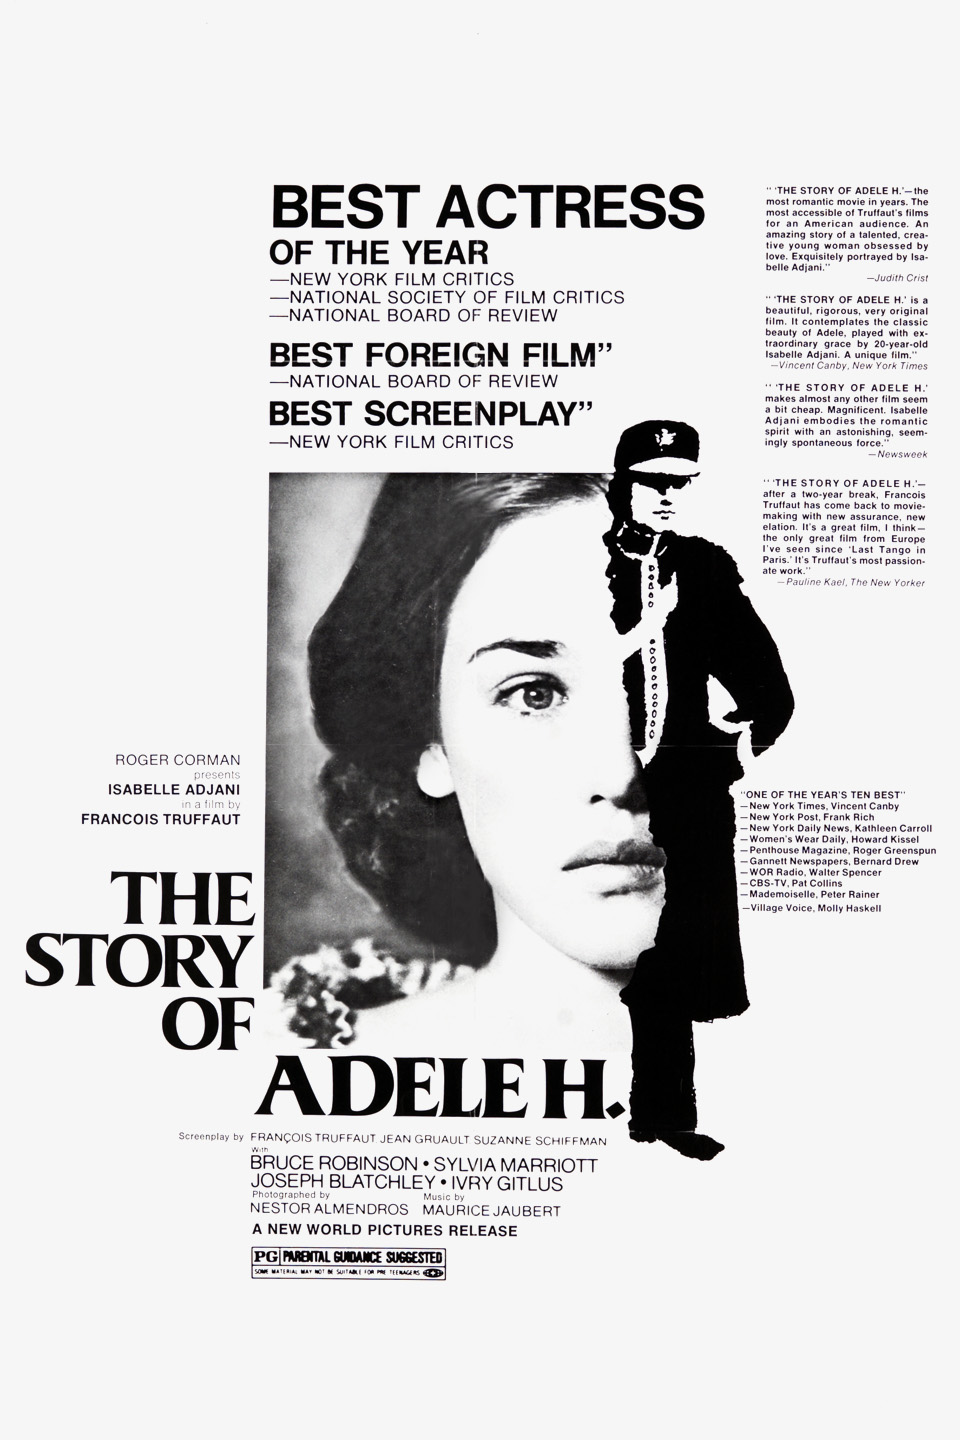 The Story of Adele H 1975